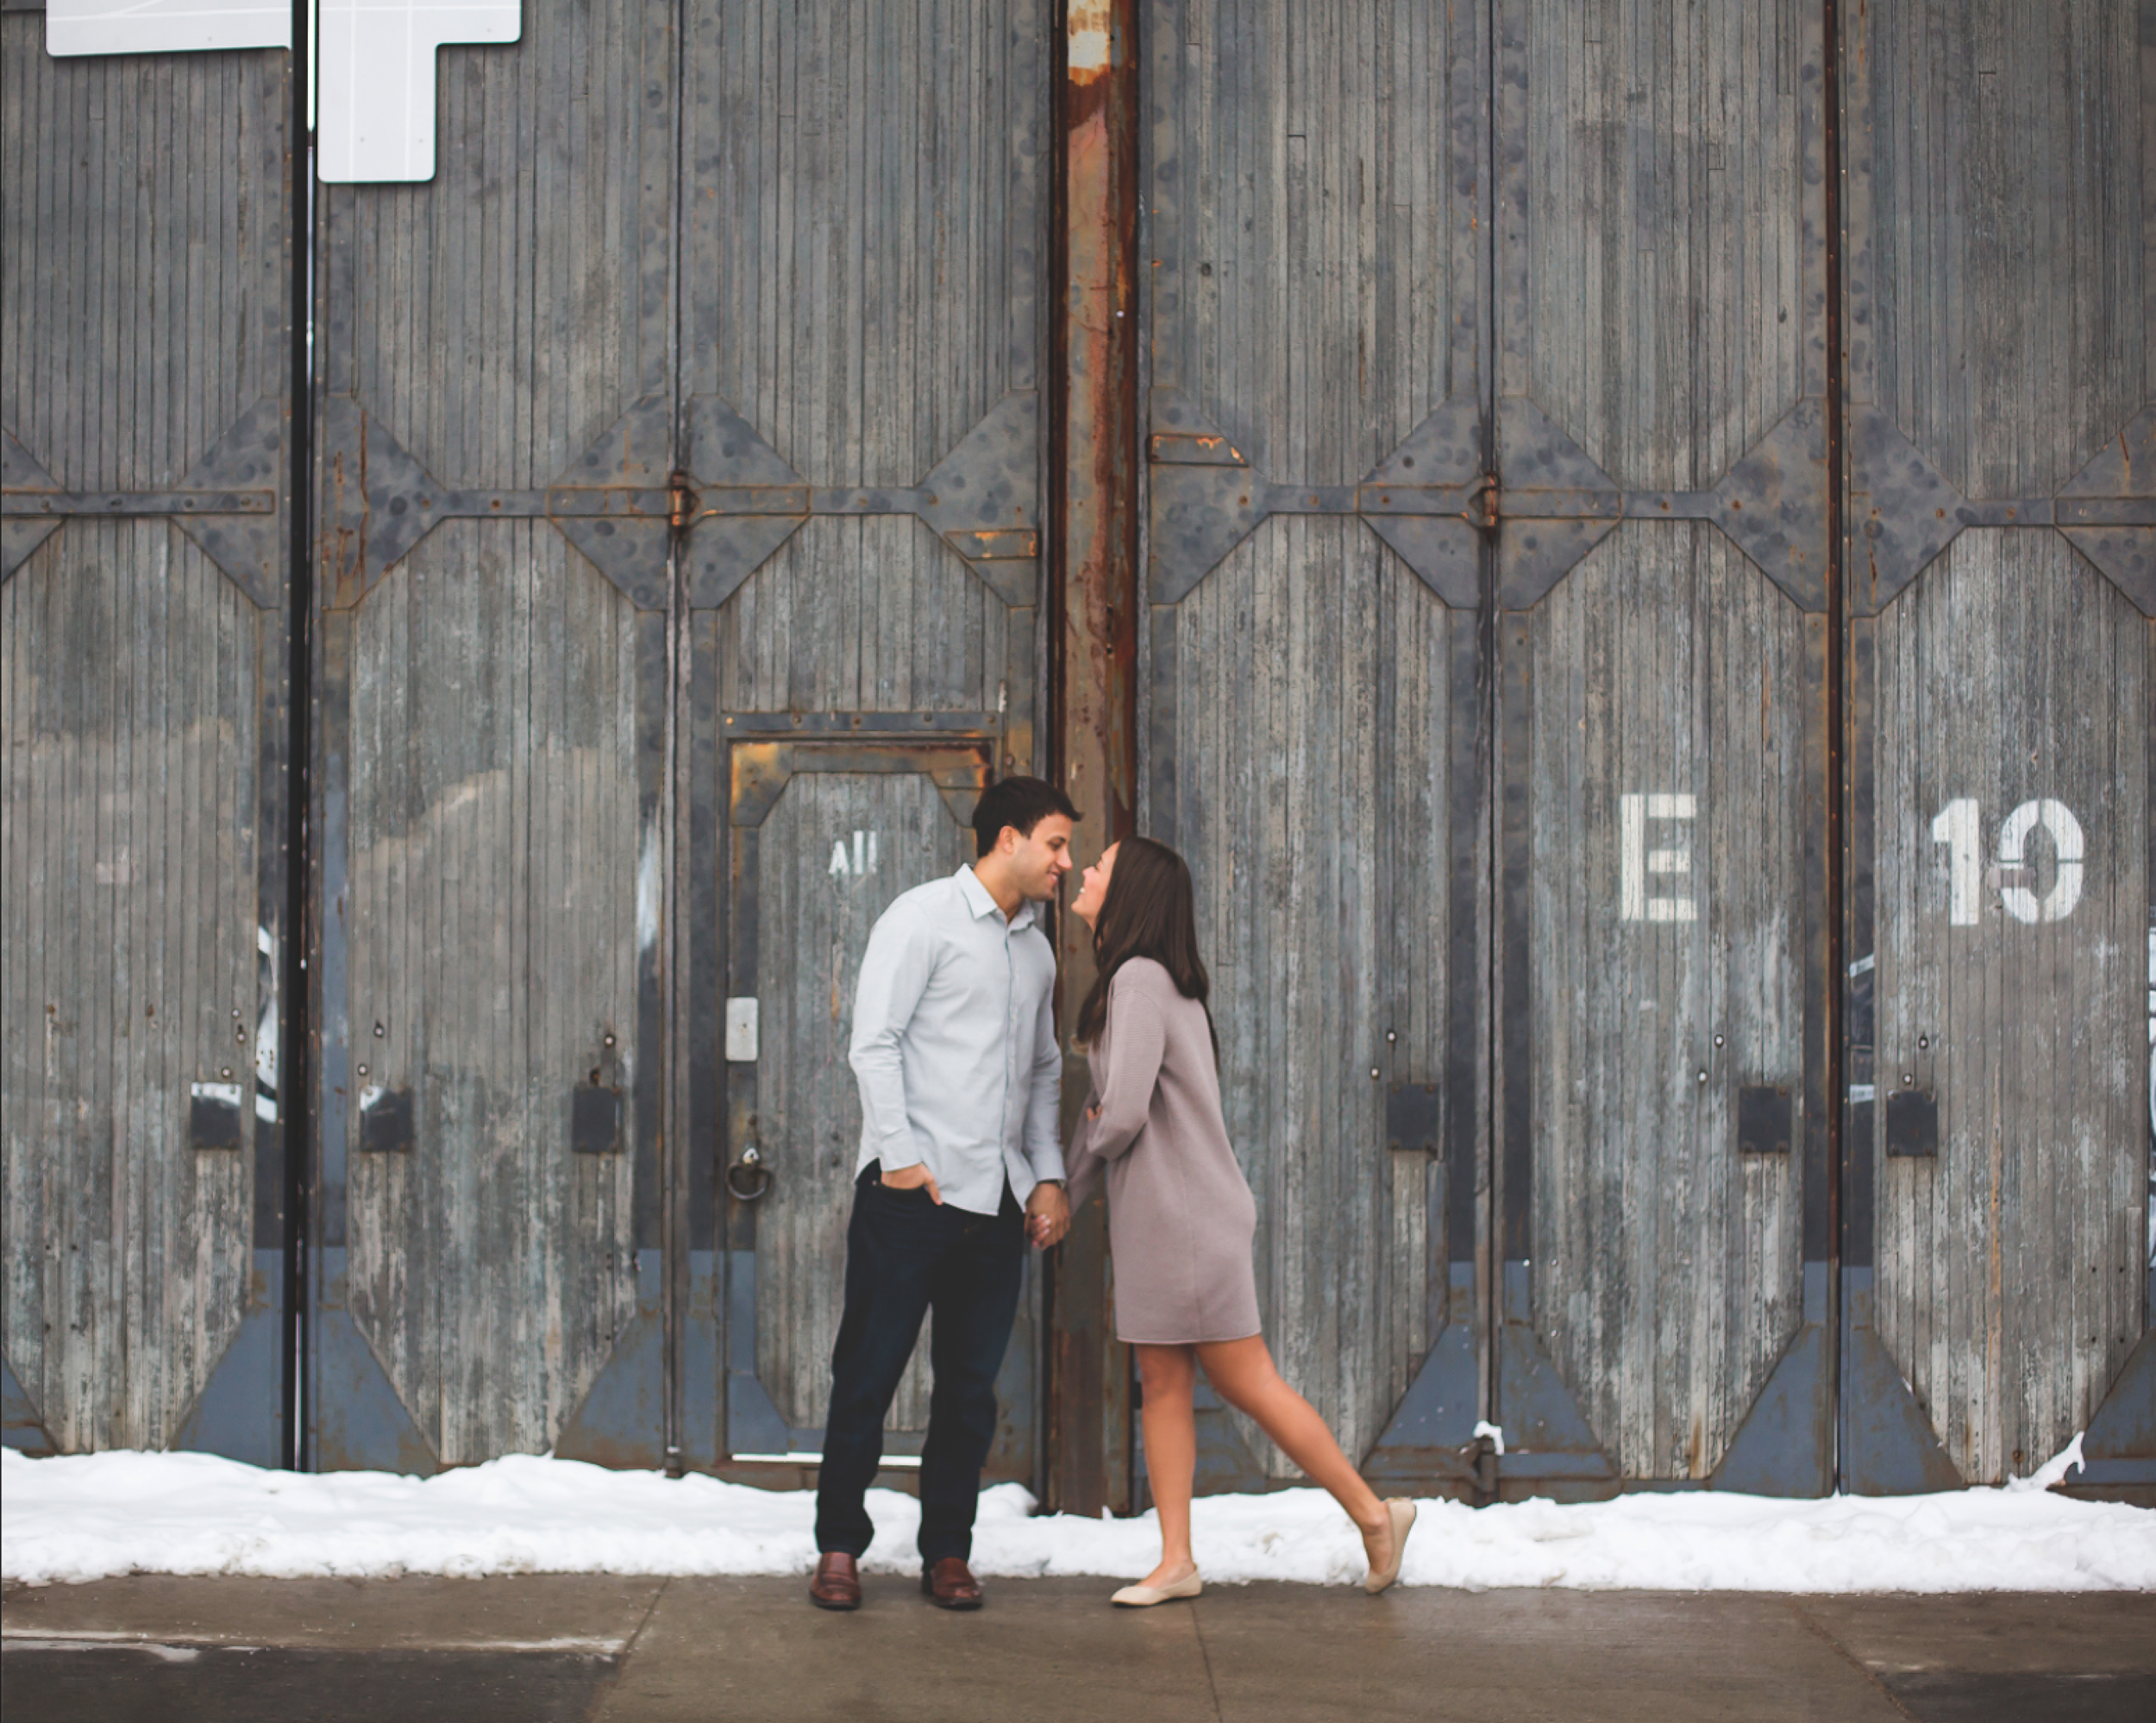 Engagement-Session-Downtown-Toronto-Hamilton-Burlington-Oakville-Niagara-Wedding-Photographer-Engaged-Photography-Artscape-Wynchwood-Barn-Urban-HamOnt-Engaged-Moments-by-Lauren-Photo-Image-18.png